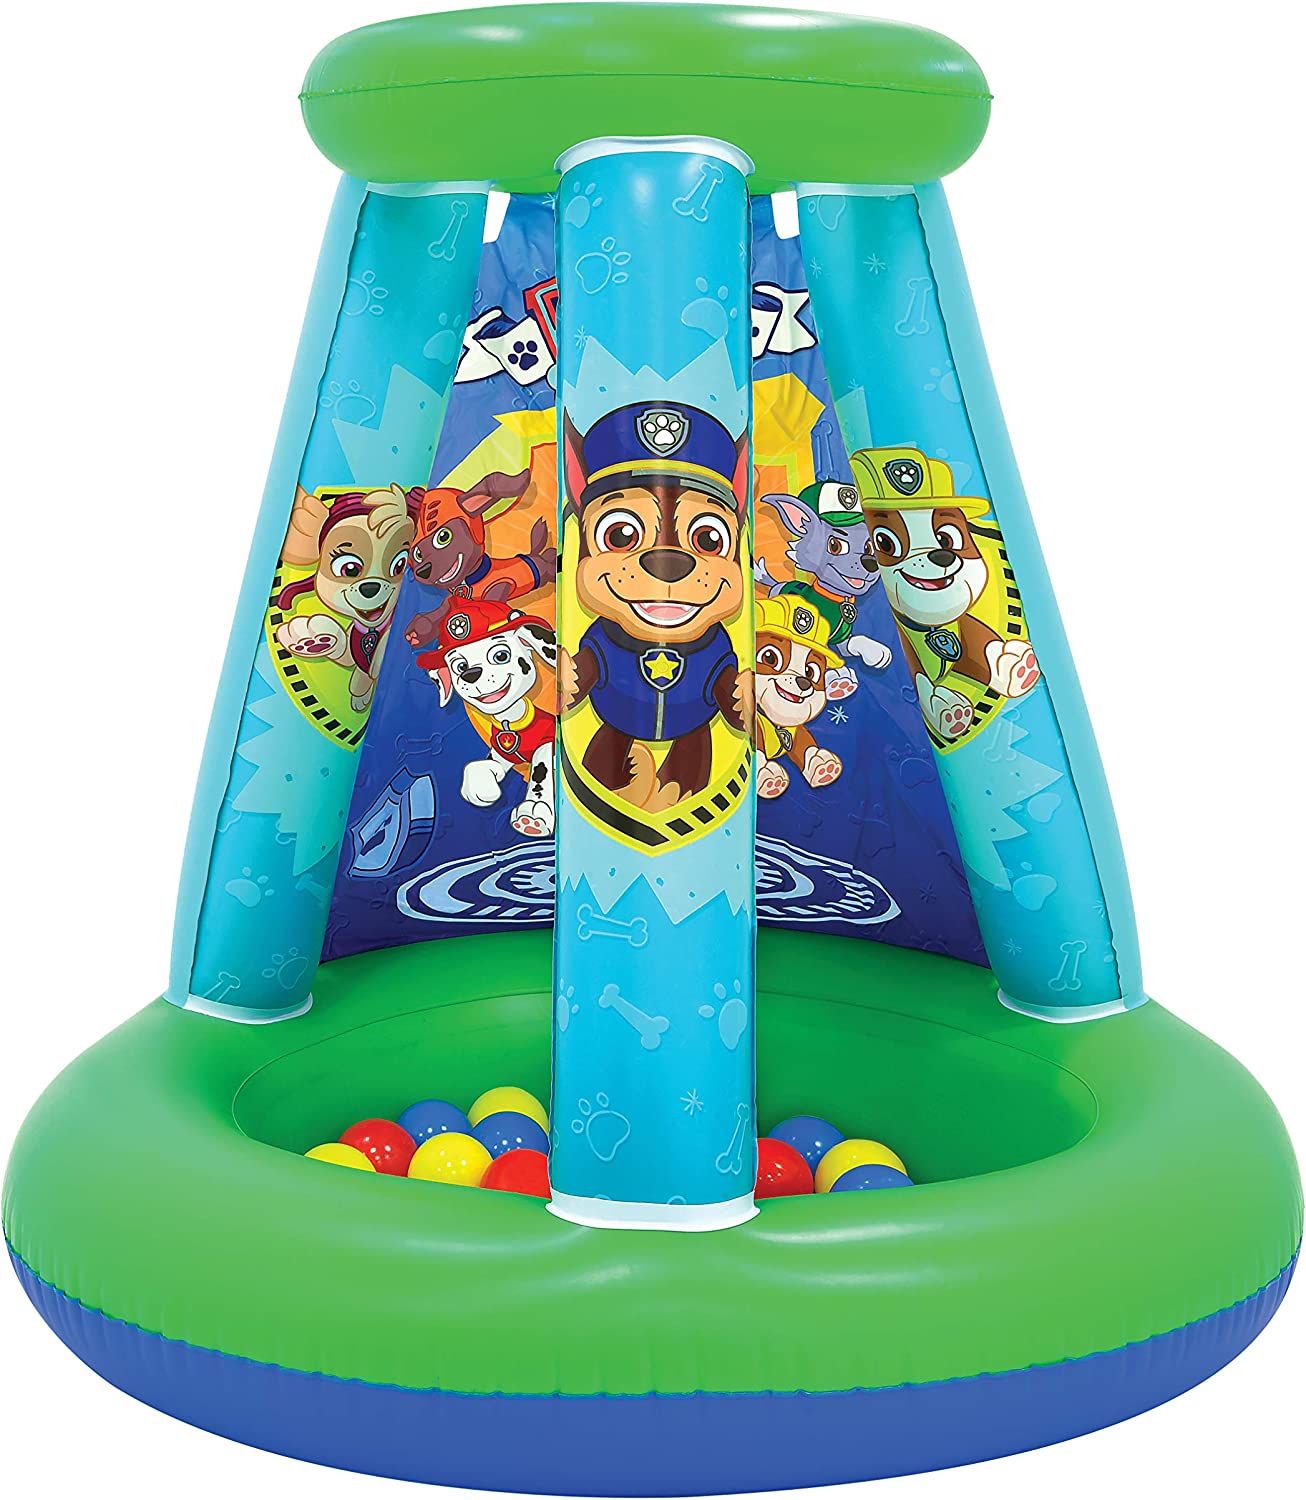 Amazon.com: Paw Patrol Pit 1 - Bola hinchable (incluye 15 ...